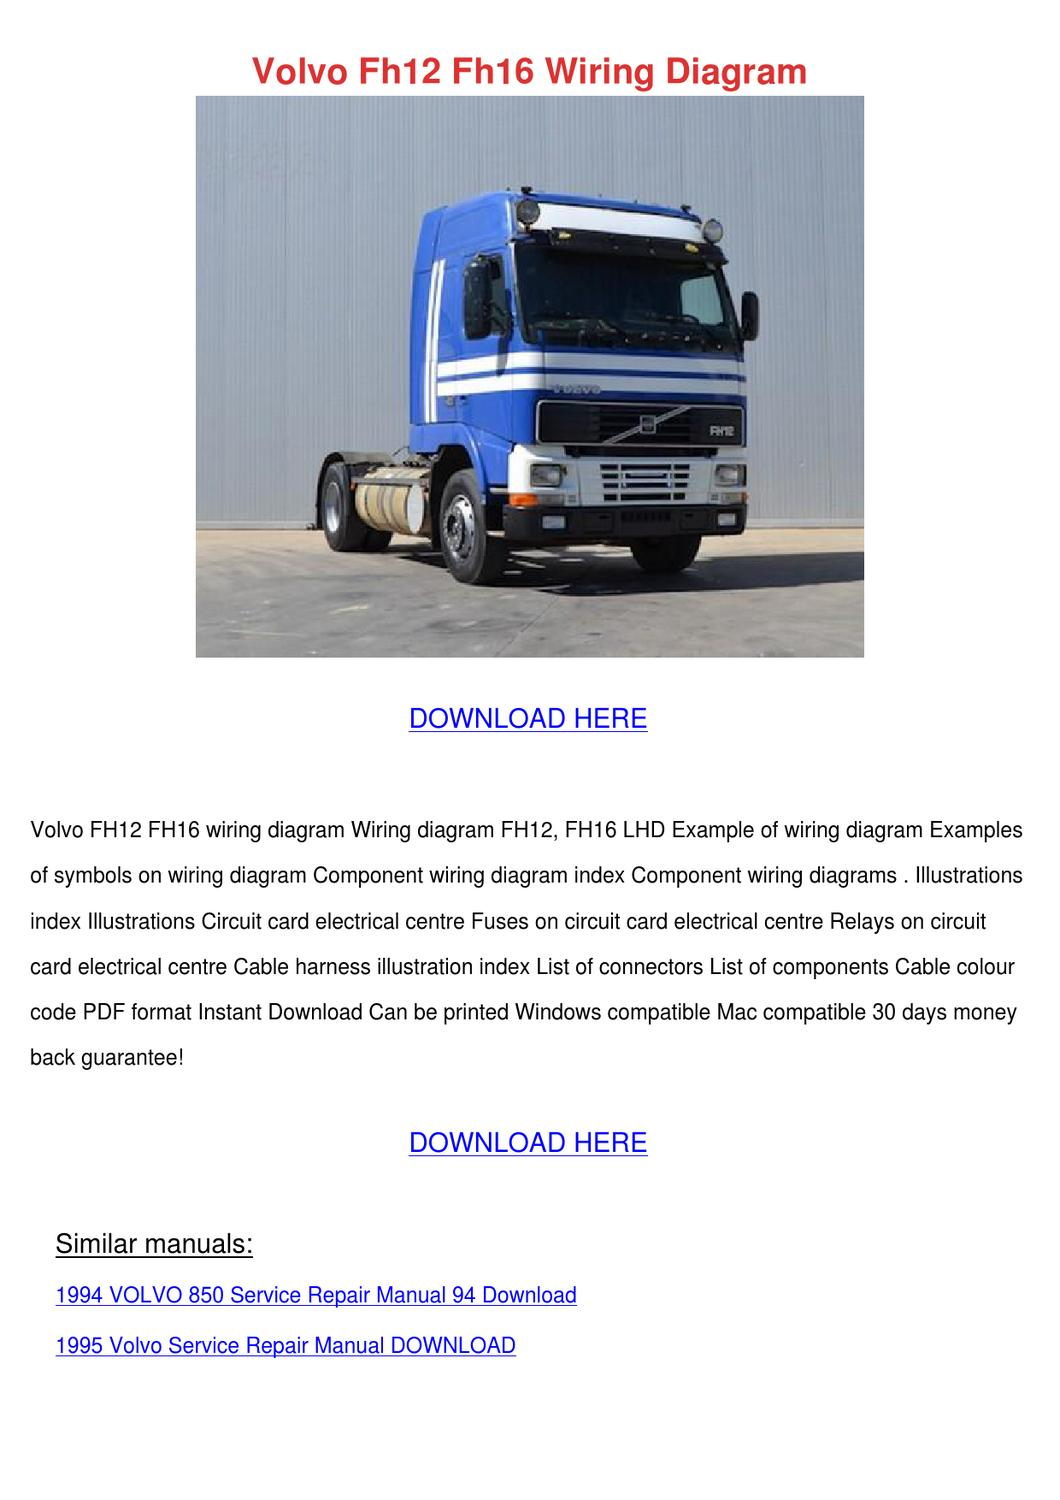 Wiring Diagram Volvo Fh16 : Volvo fh wiring diagram by romarainey issuu